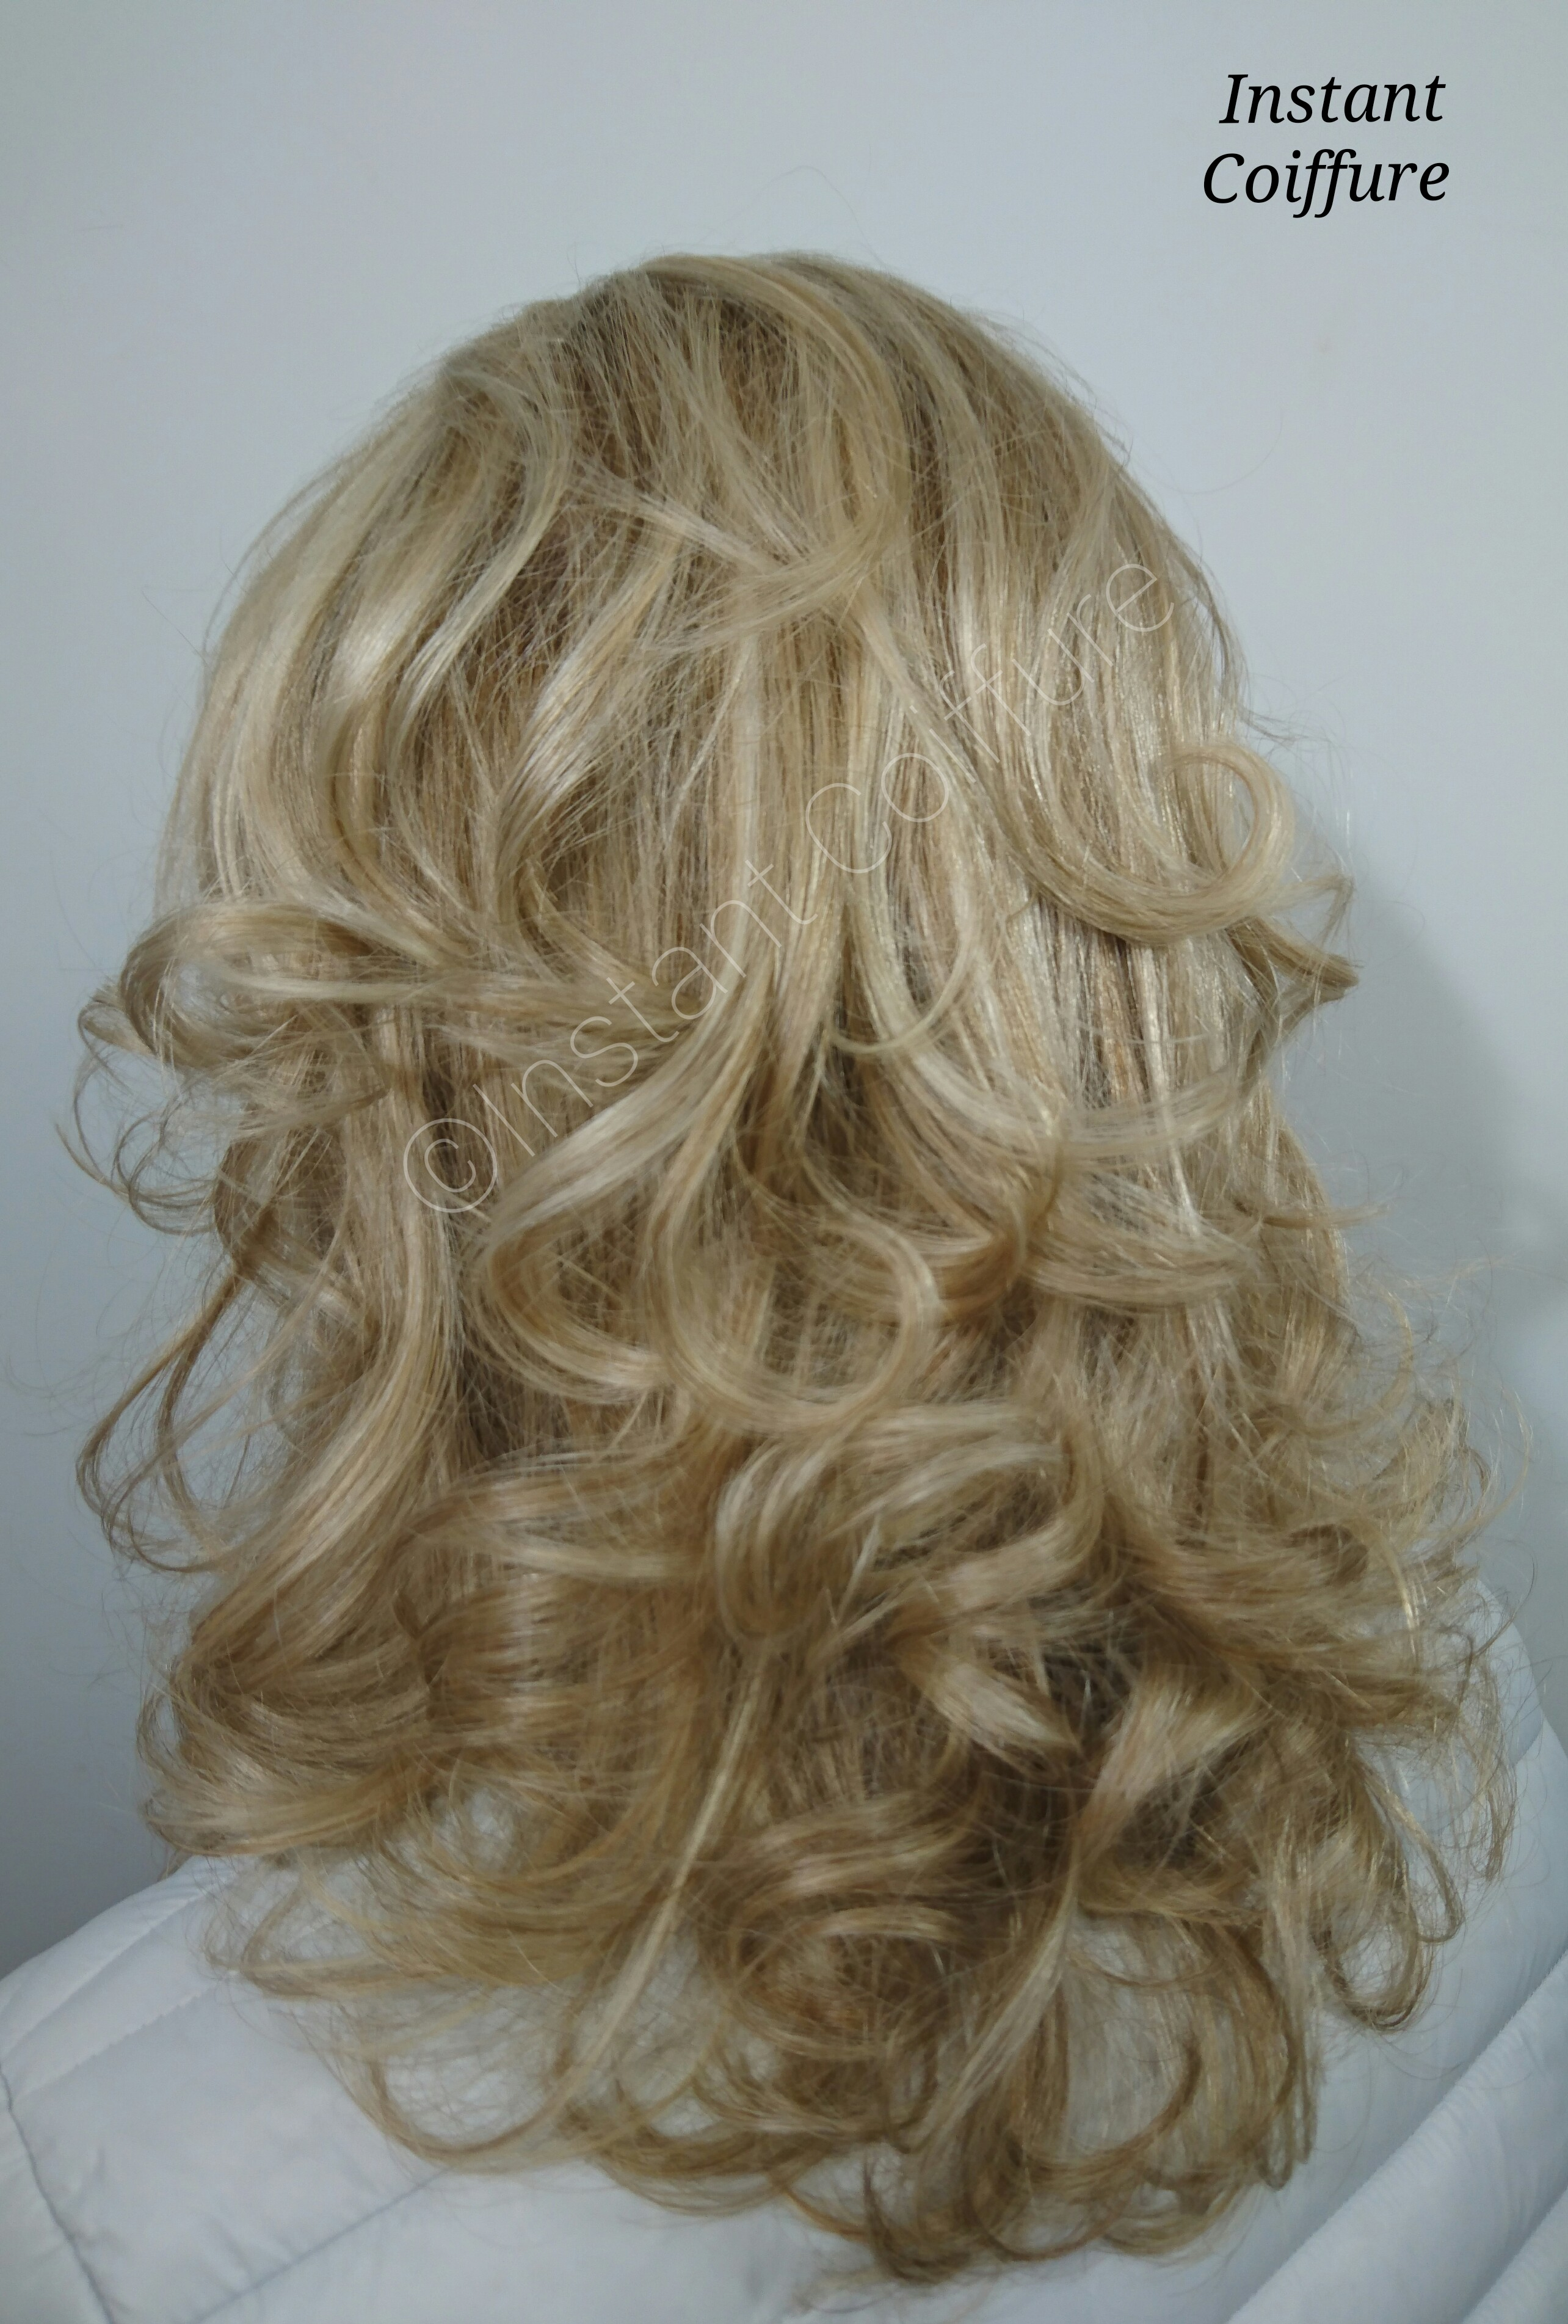 Blond bebe Instant Coiffure